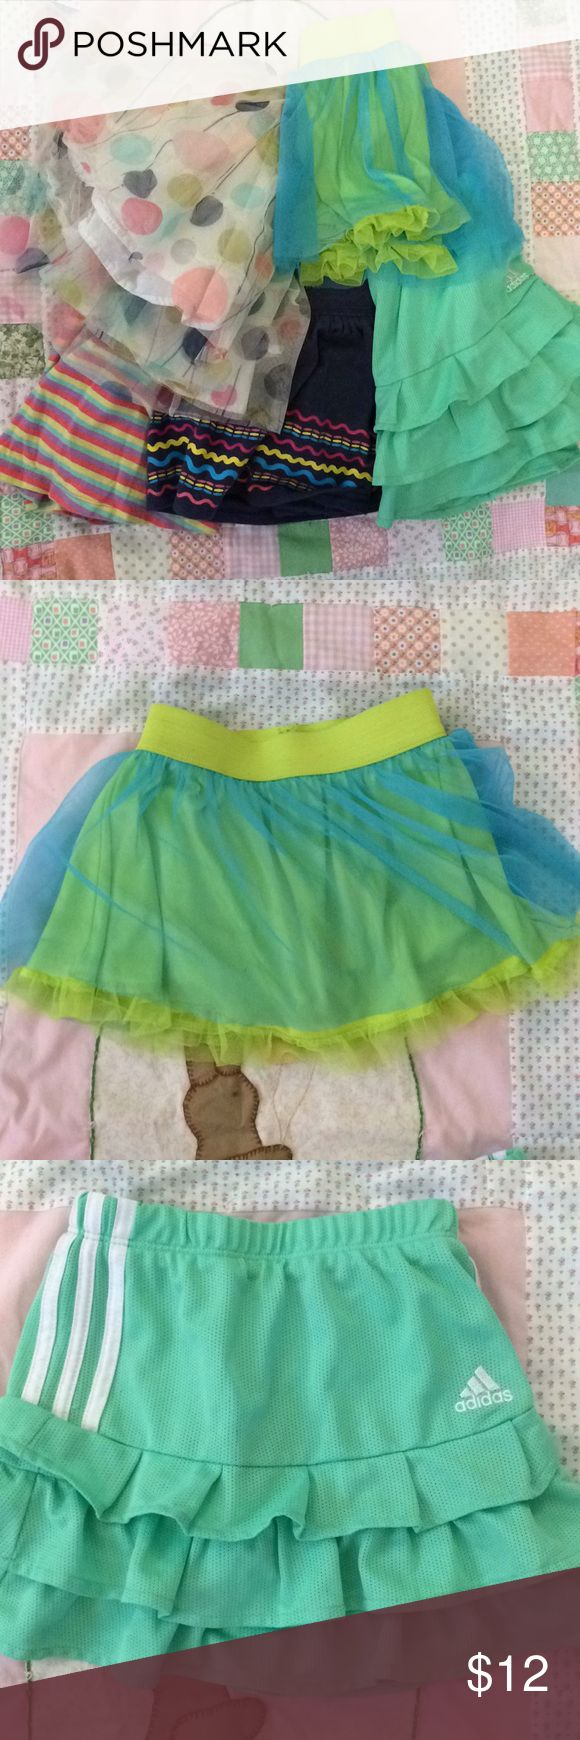 """✨ Lot of 5 skirts/skorts 4/5 and 4t. My daughter wears skirts under and over EVERYTHING! Multi-colored balloons skirt is Cherokee 4t with no observable snags. Denim colored (soft cotton) skort with multi squiggly lines is a 4/5 - tag says """"mix&match."""" Mint Adidas skort has white stripes on both sides and is 4t. Multi striped skort is 4/5 """"mix&match.""""  Aqua and lime tutu skort is My Little Pony MLP 4t - piling on undershorts and a few snags on skirt. All of these fit her at the same time. See…"""